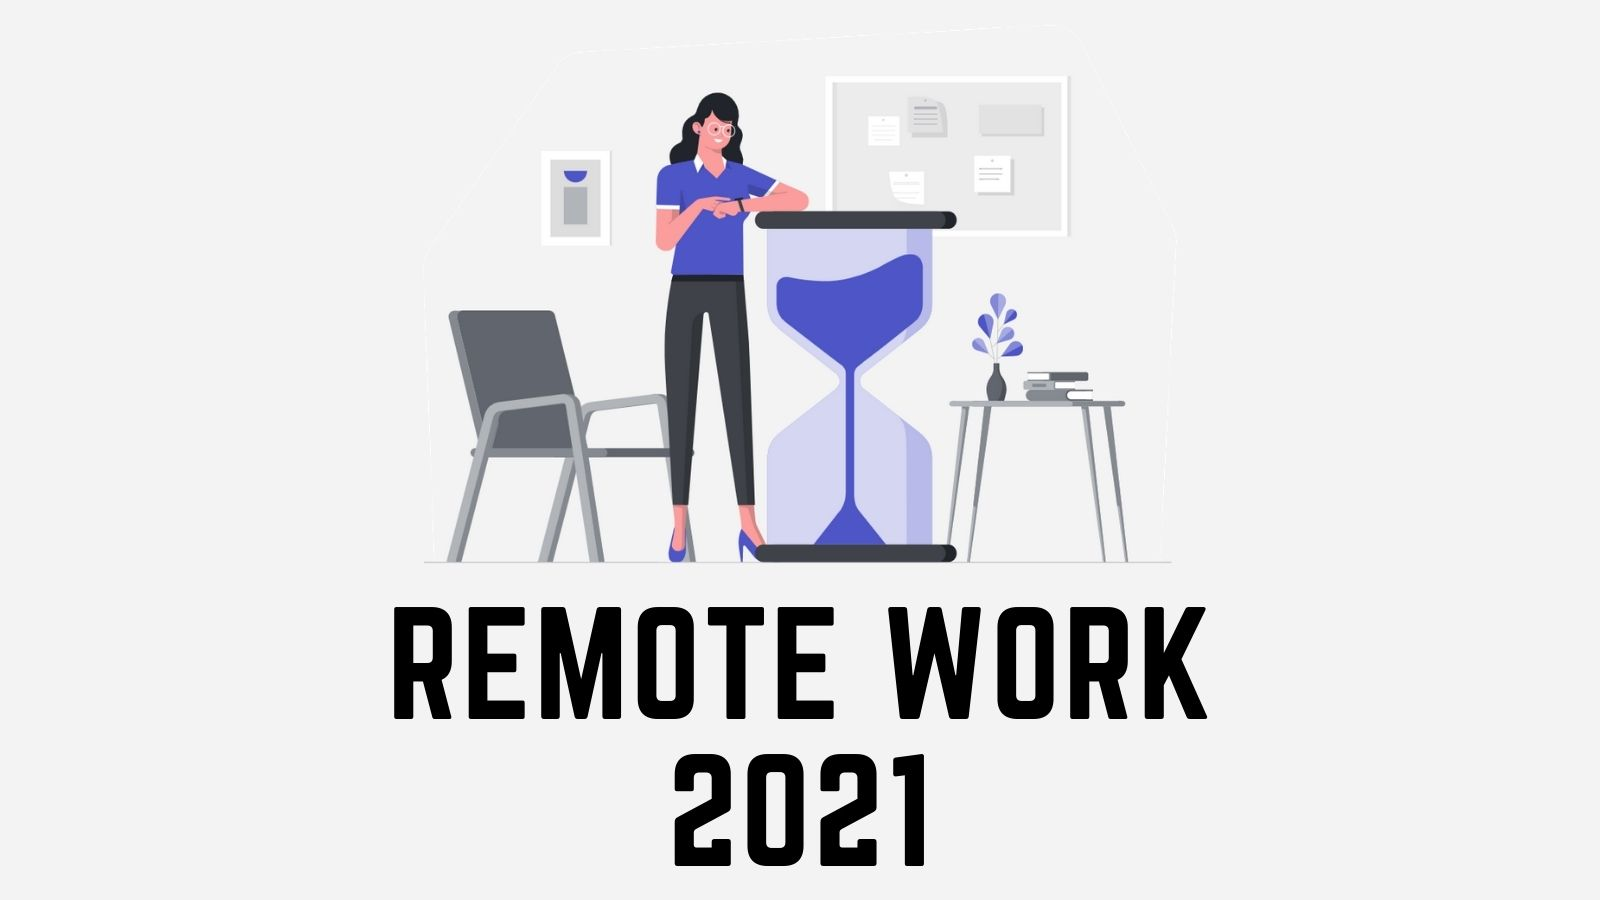 remote work 2021 - introduction